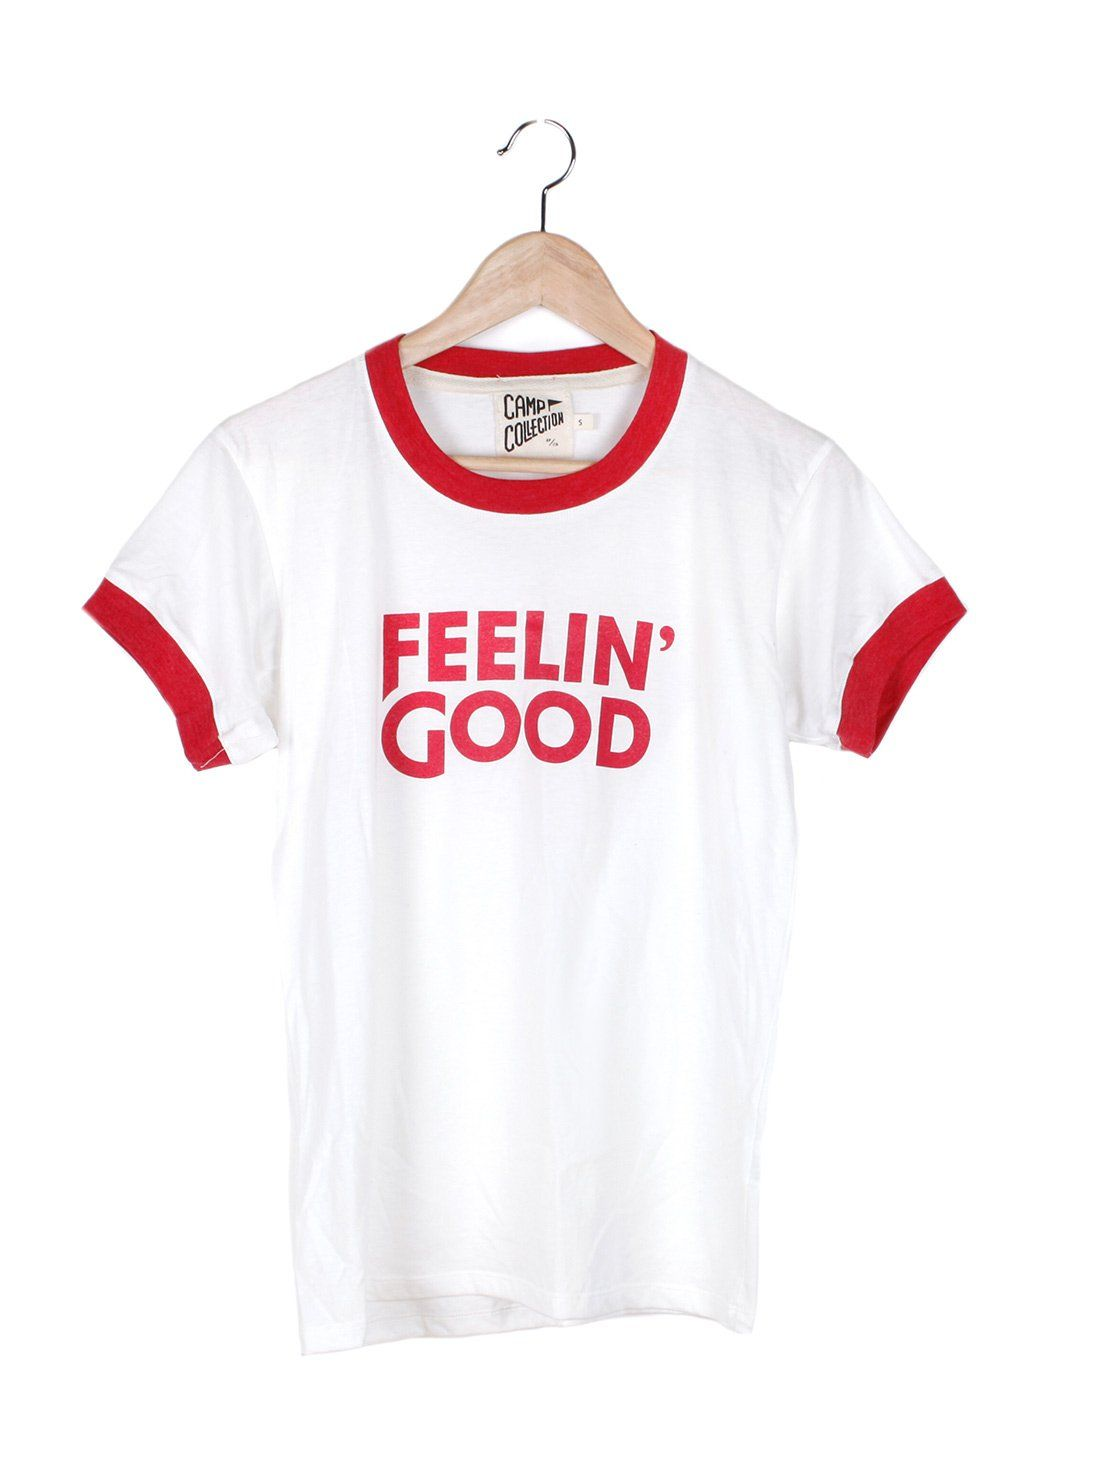 e188e11d9 You feel good... And we knew that you would! This tee is a must for anyone  who wants good vibes only. Details: 60% cotton. Relaxed fit.